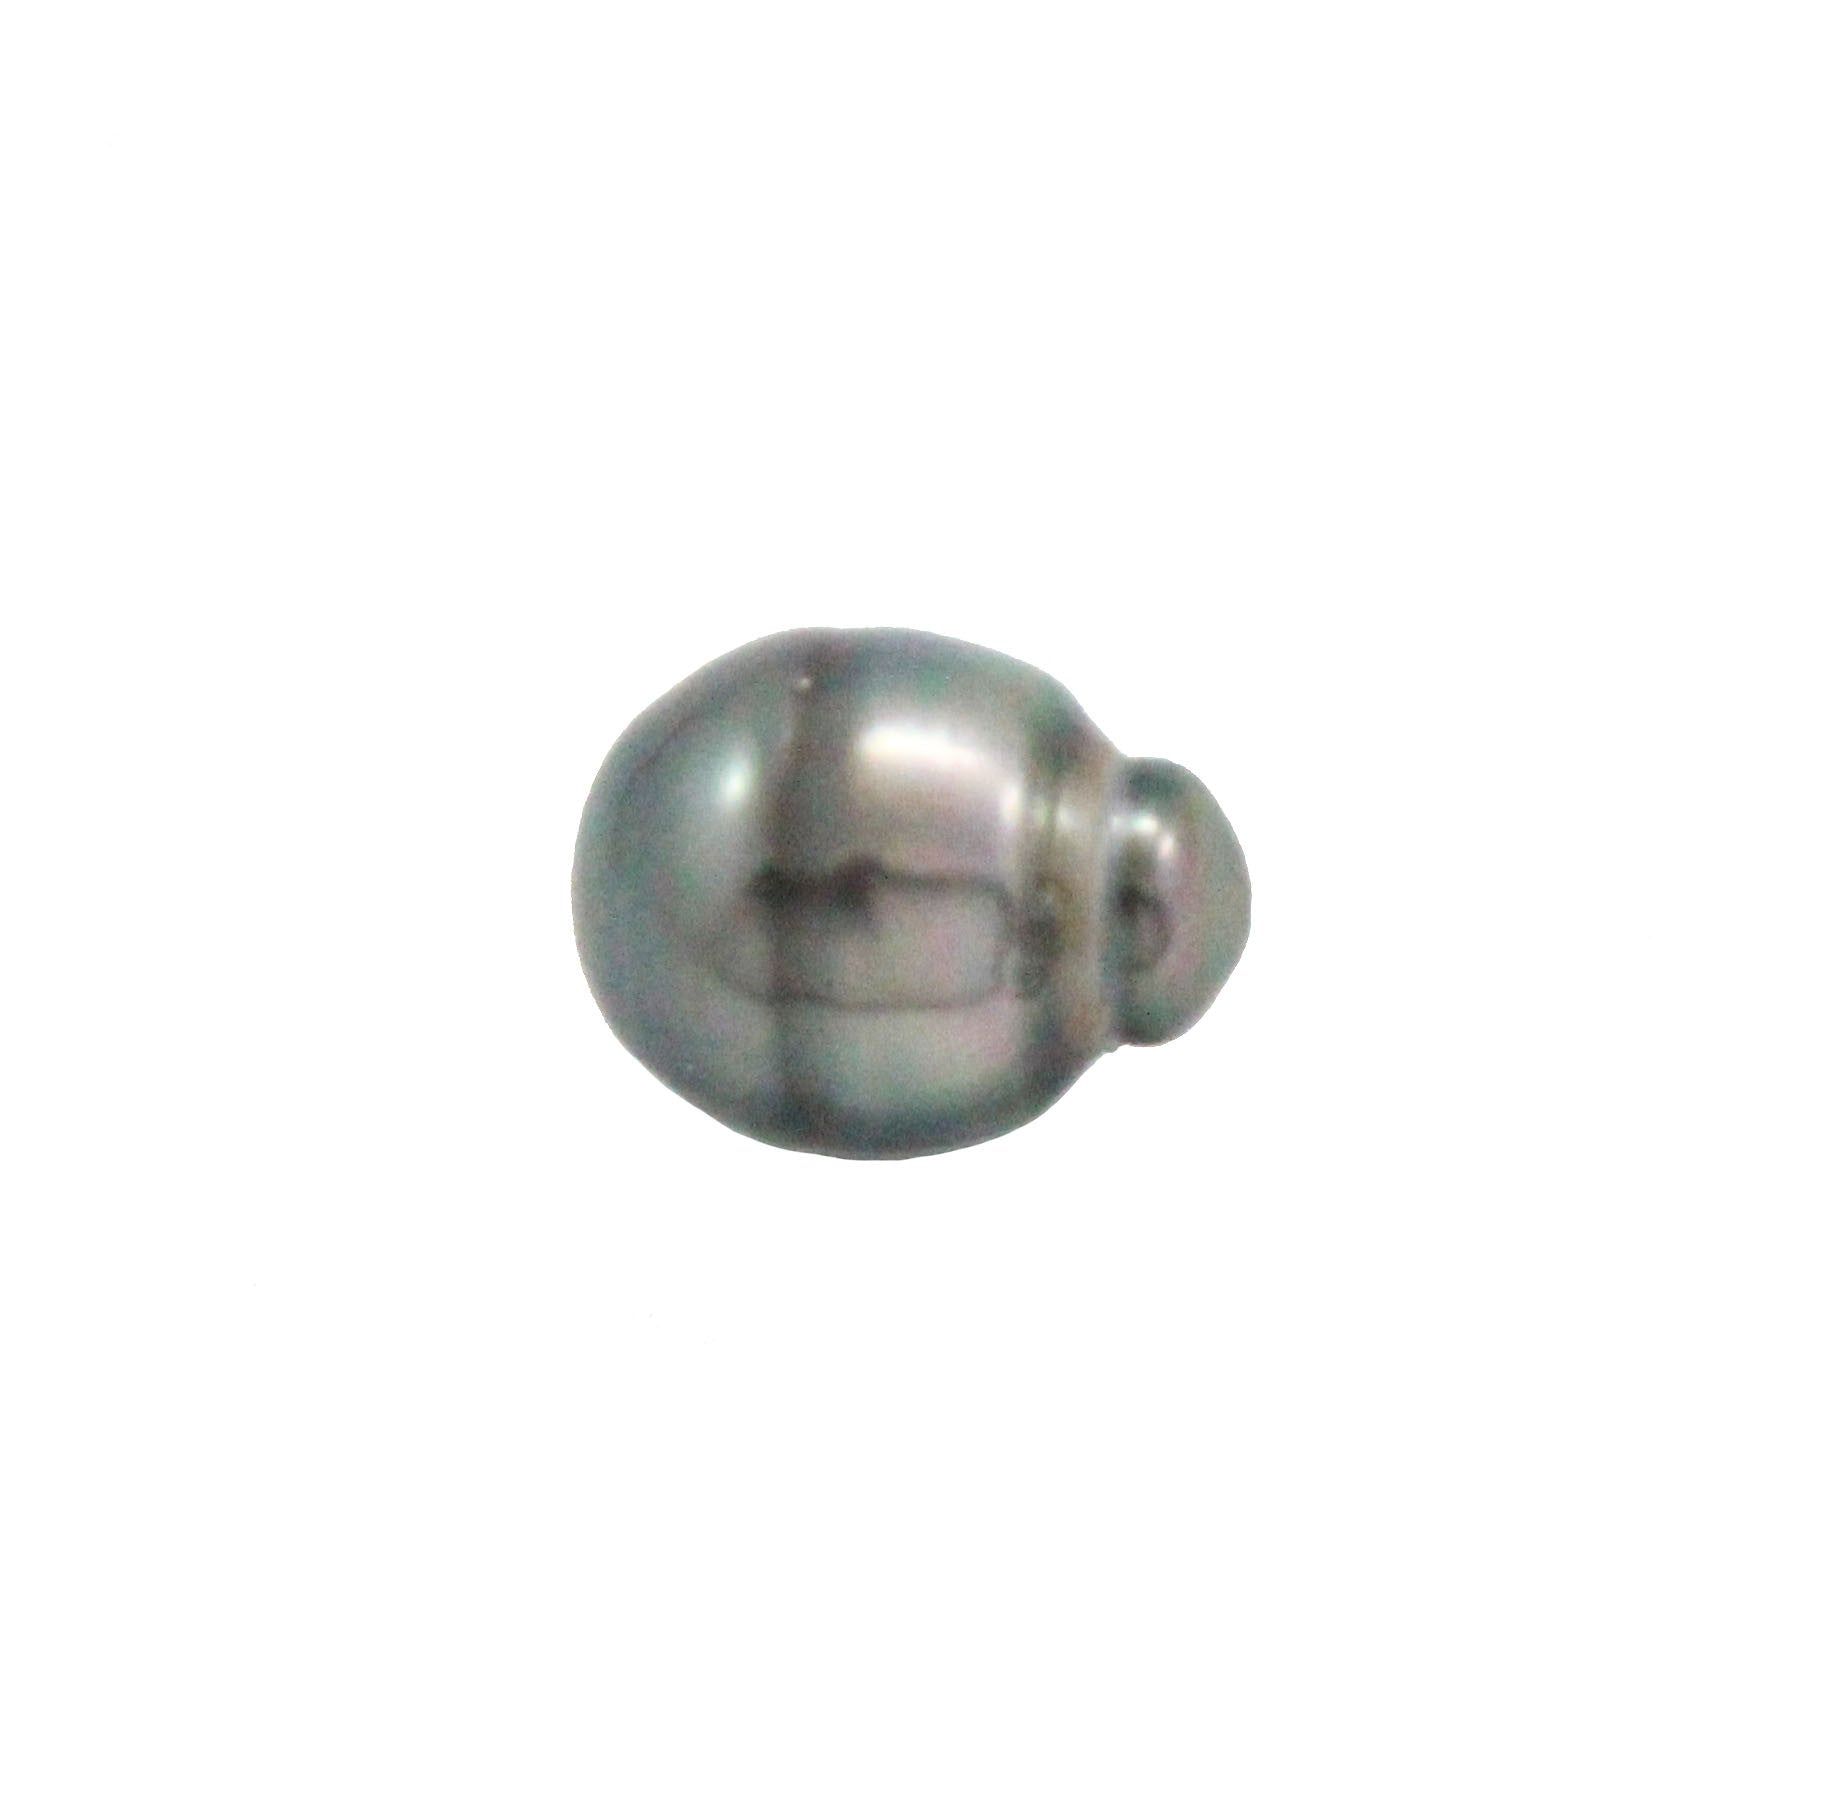 Tahitian pearl undrilled 1.05gr mm 11.12x8.6mm - Purchase only with custom order - Sarah Hughes - 6